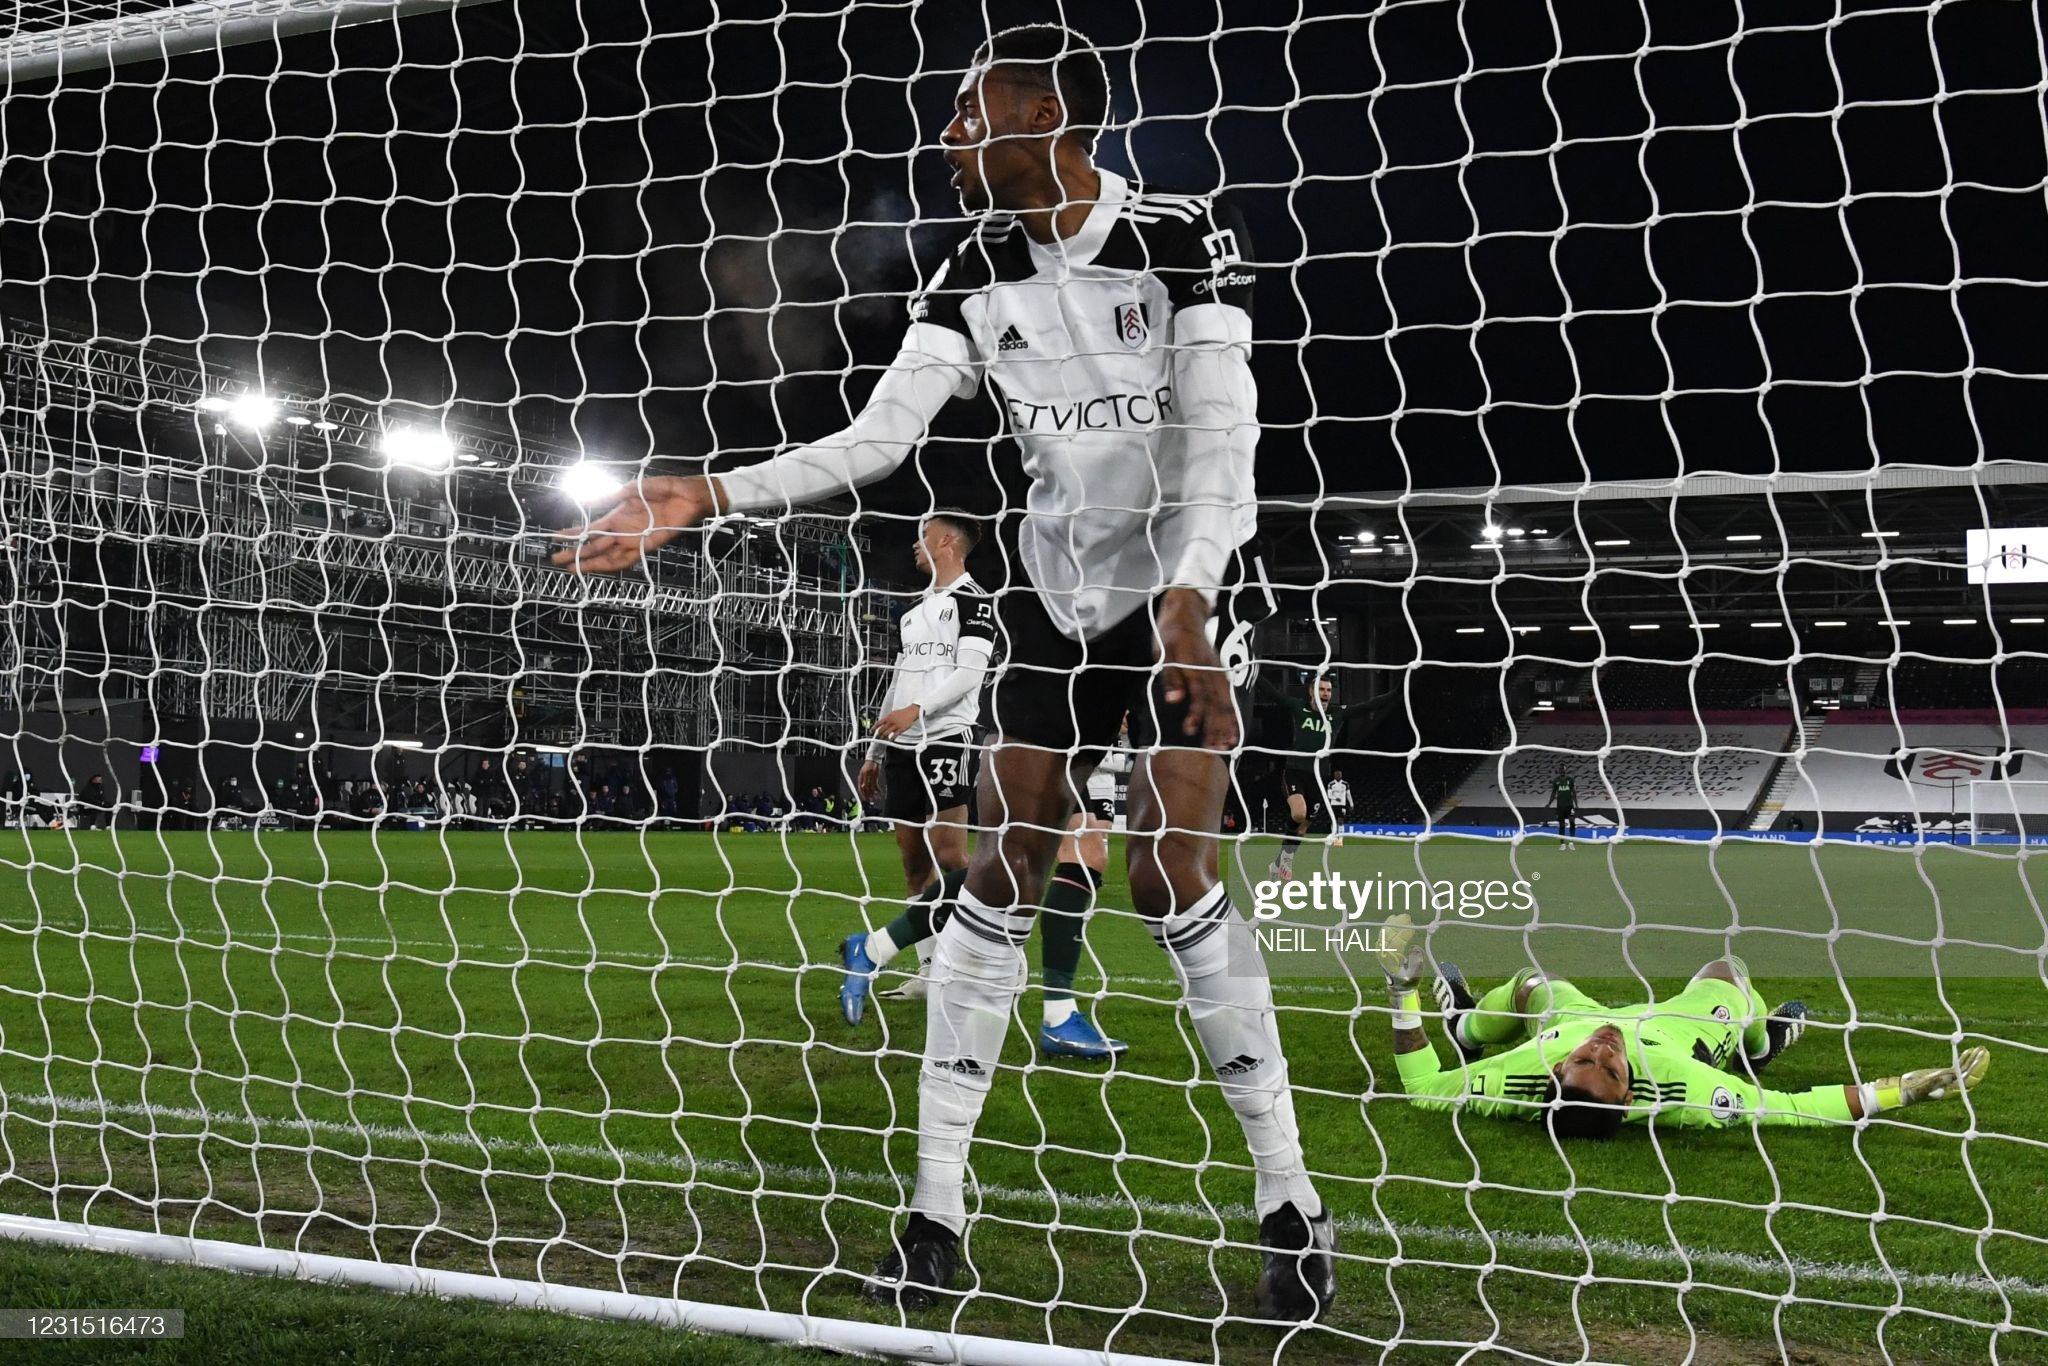 Blow for Fulham as Spurs win derby clash